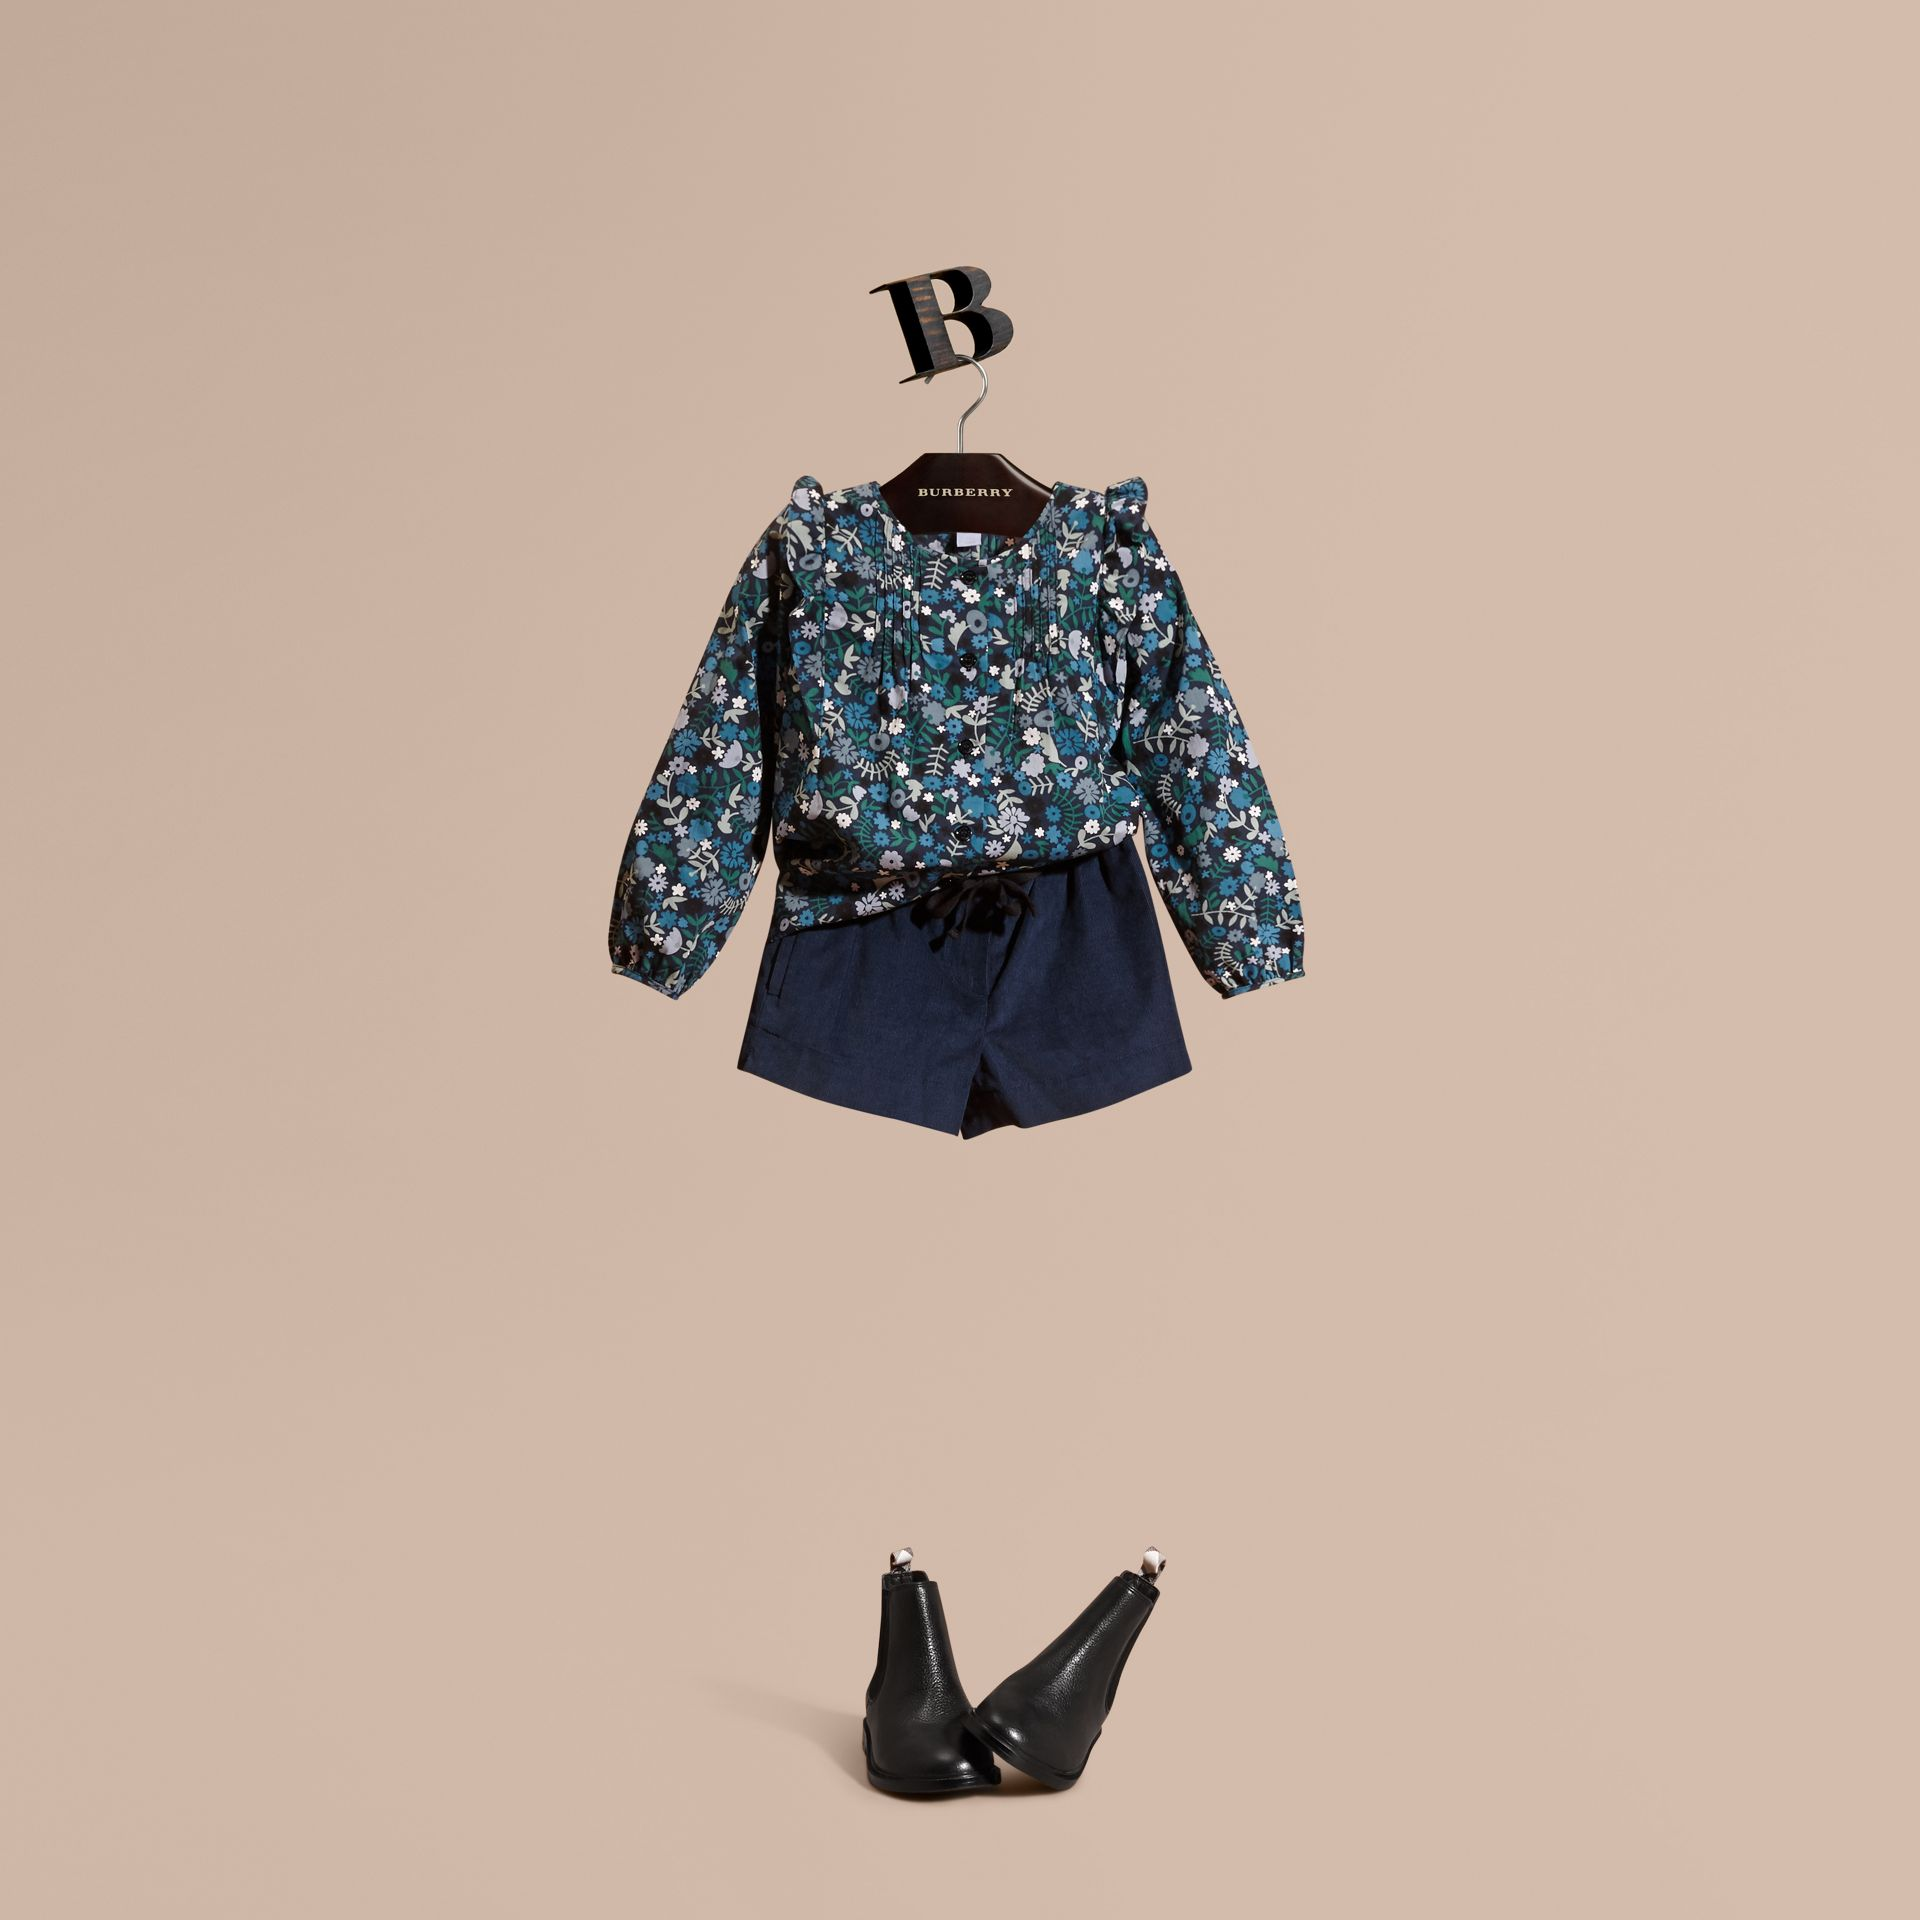 Hydrangea blue Floral Print Cotton Shirt with Ruffle Detail Hydrangea Blue - gallery image 1